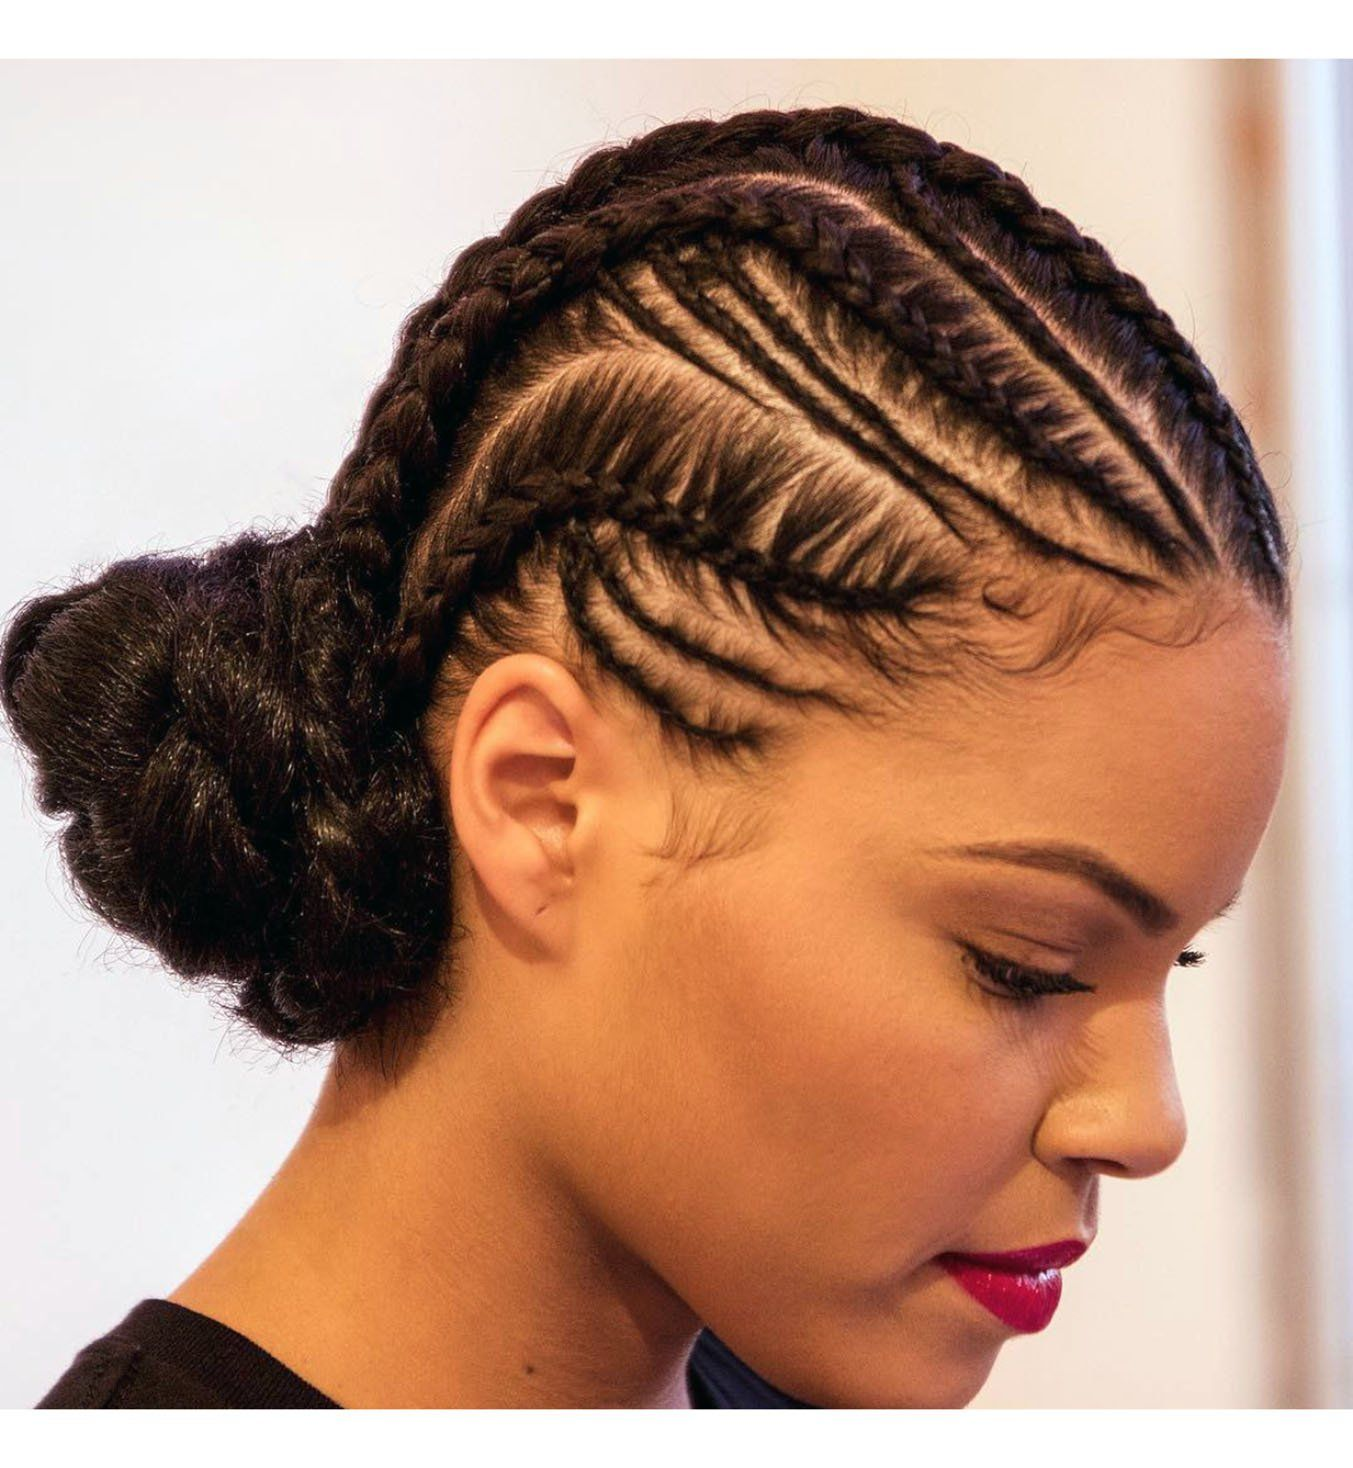 Coiffure Africaine Braid Les 10 Plus Belles Cornrows Braids Hair Braids For